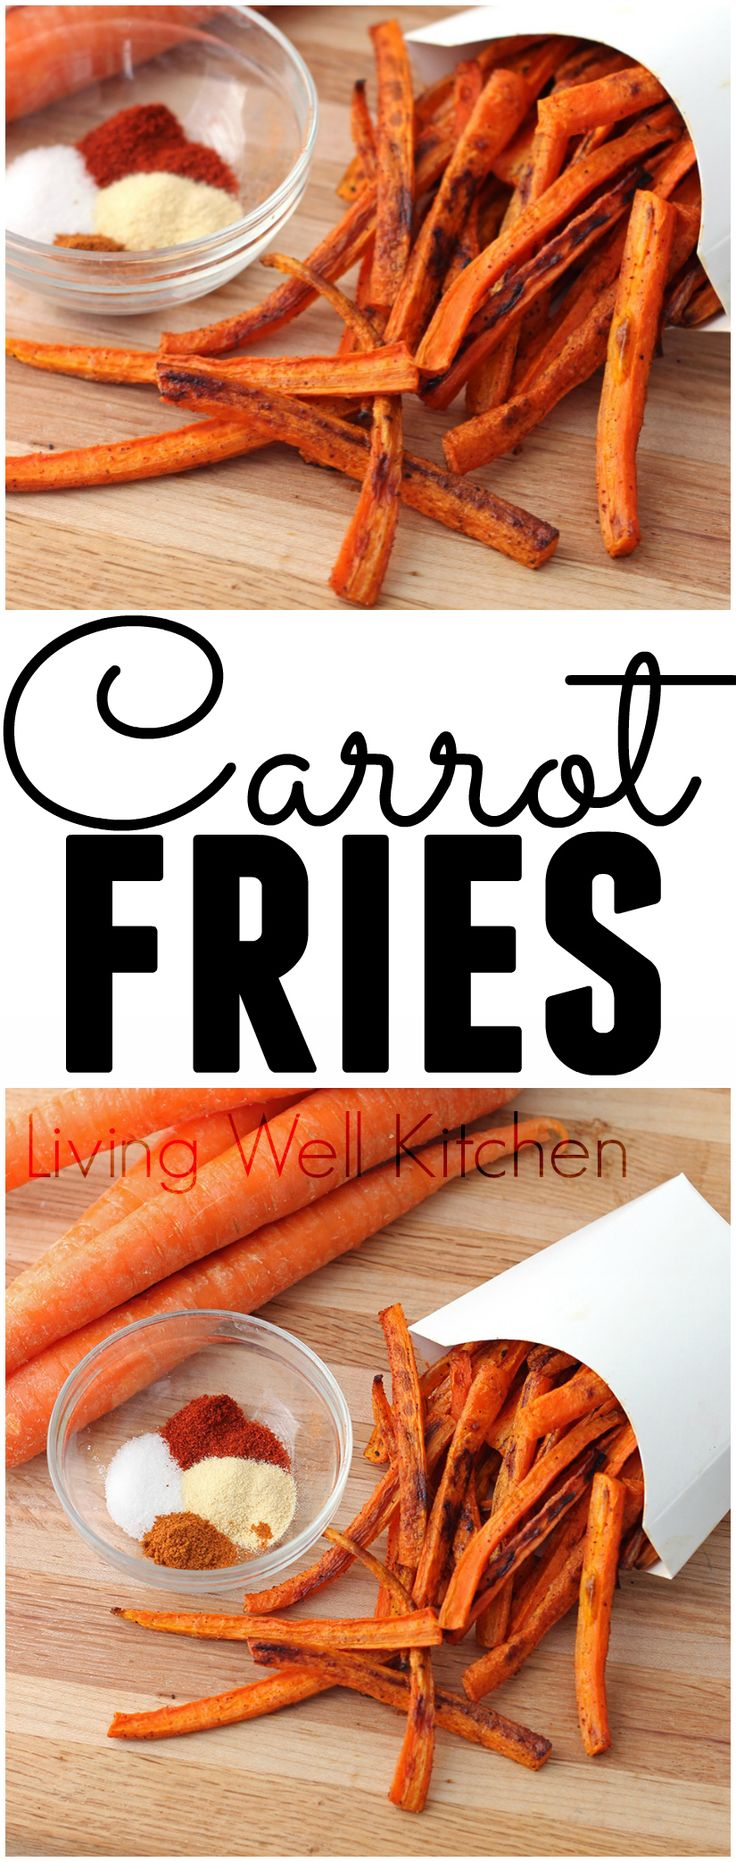 You'll happily eat your veggies with these flavorful Carrot Fries from @memeinge. Great for an Easter side or any springtime meal    http://memeinge.com/blog/carrot-fries/